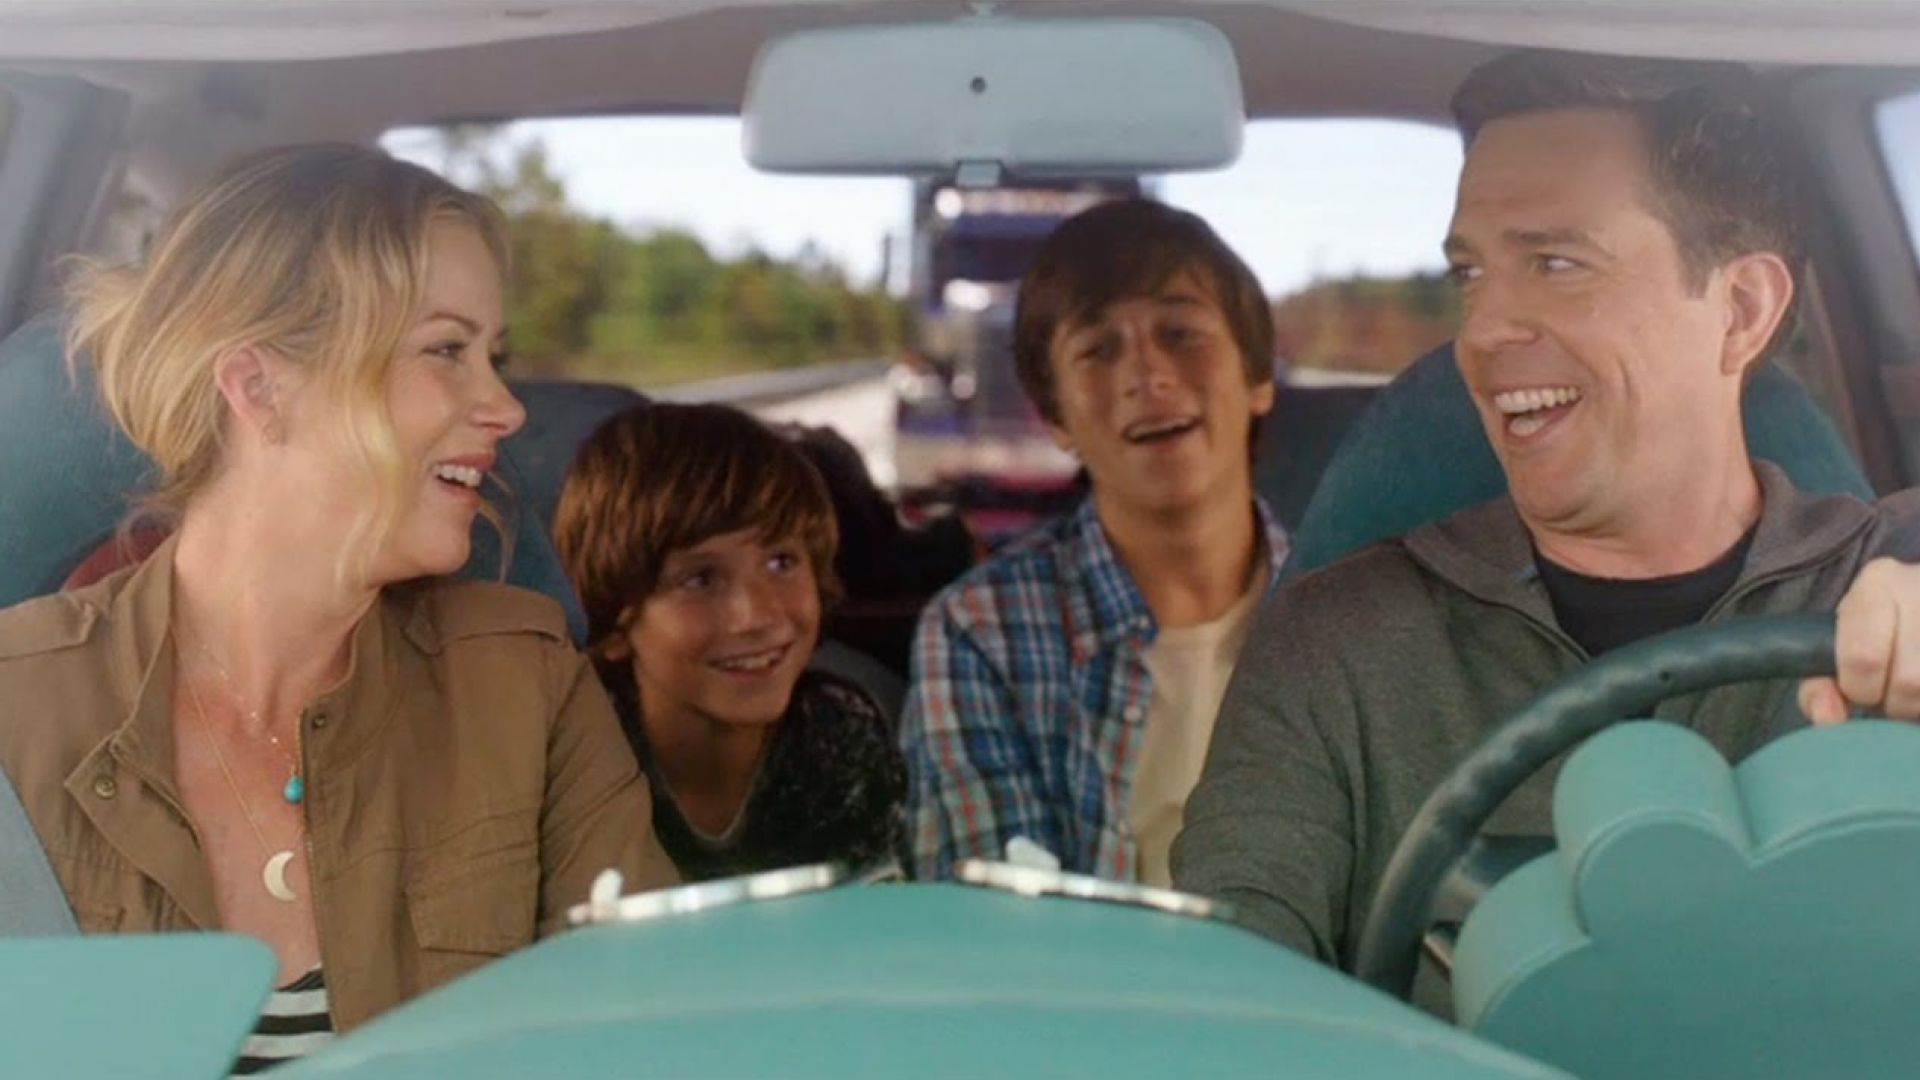 Wally World Here We Come in First Red Band Trailer for 'Vaca